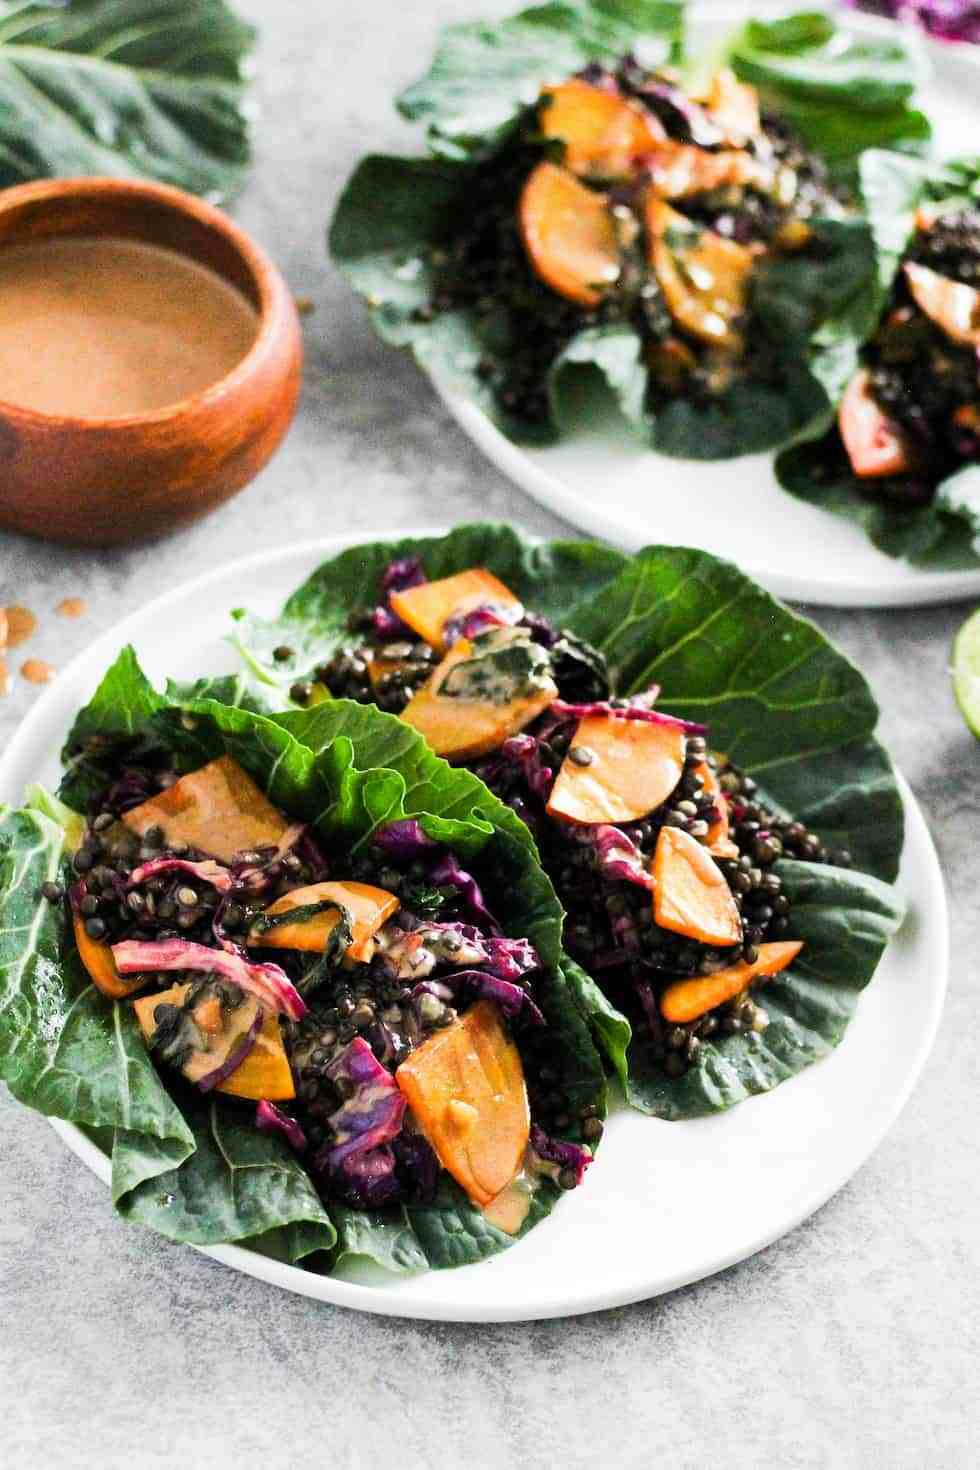 Black lentil collard wraps with golden beets and black lentils. Vegetarian dinner recipes.